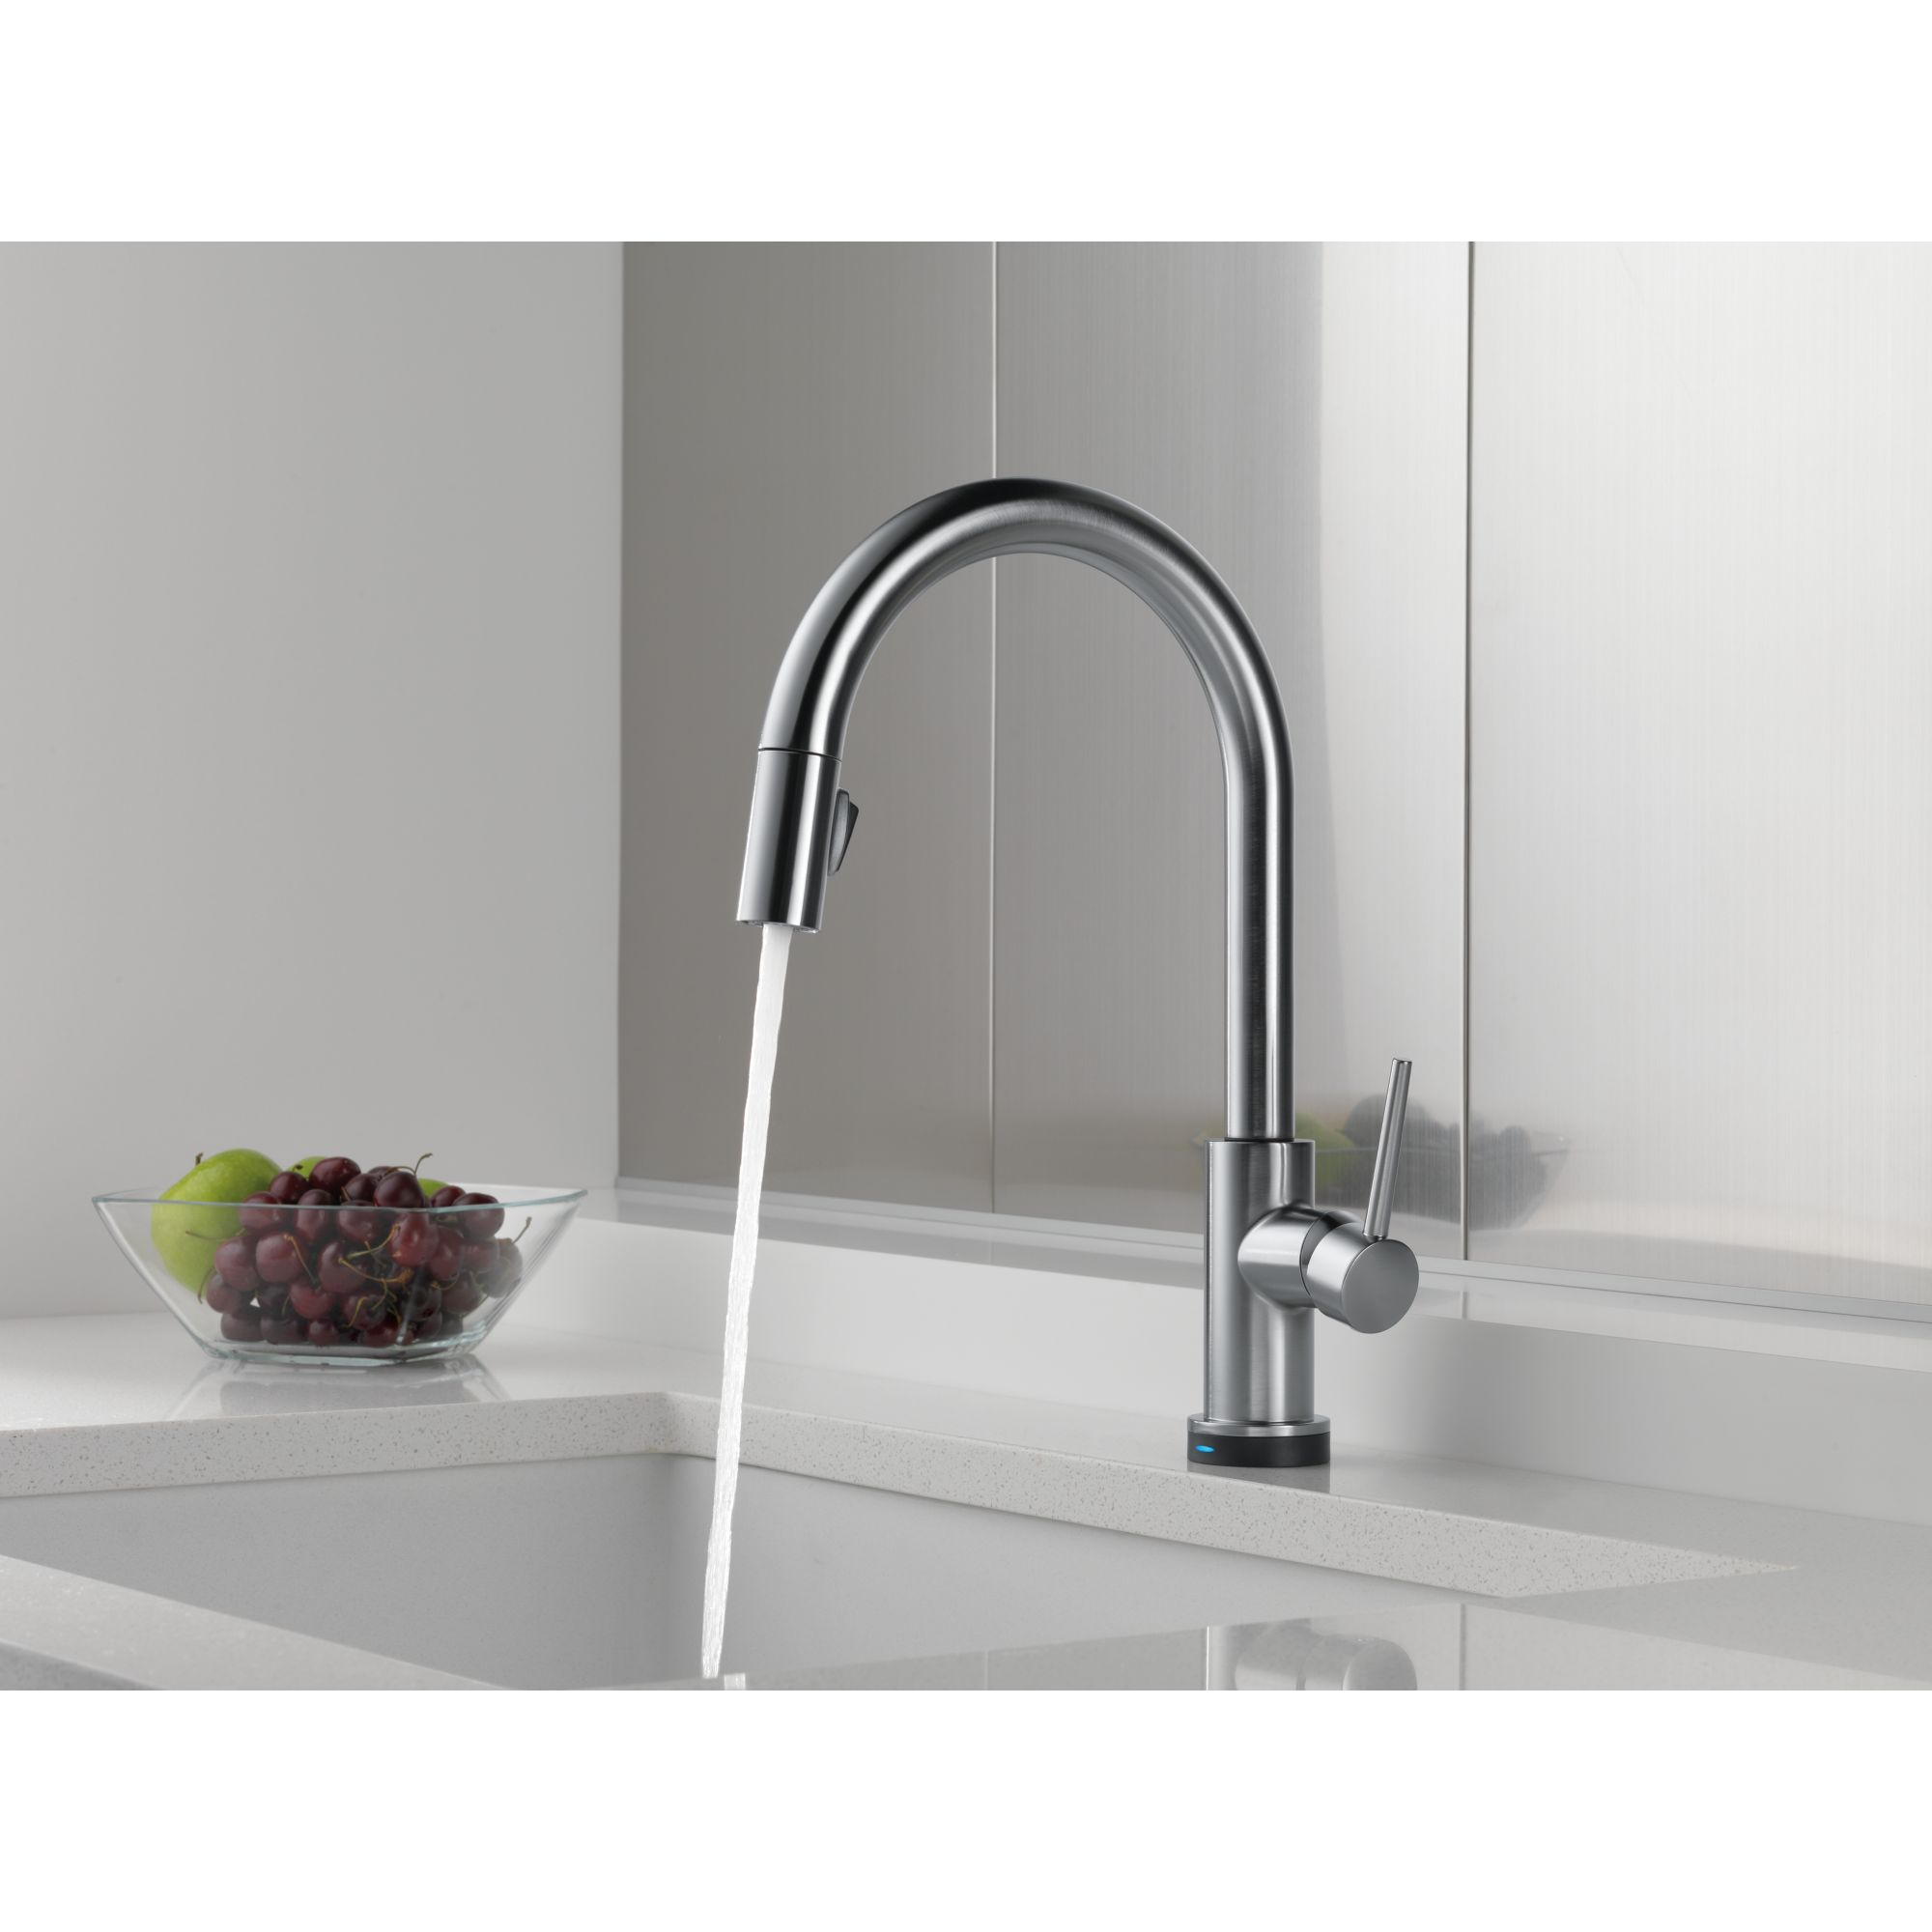 Bathroom Sink Faucet Replacement.Vigo Industries. Bathroom